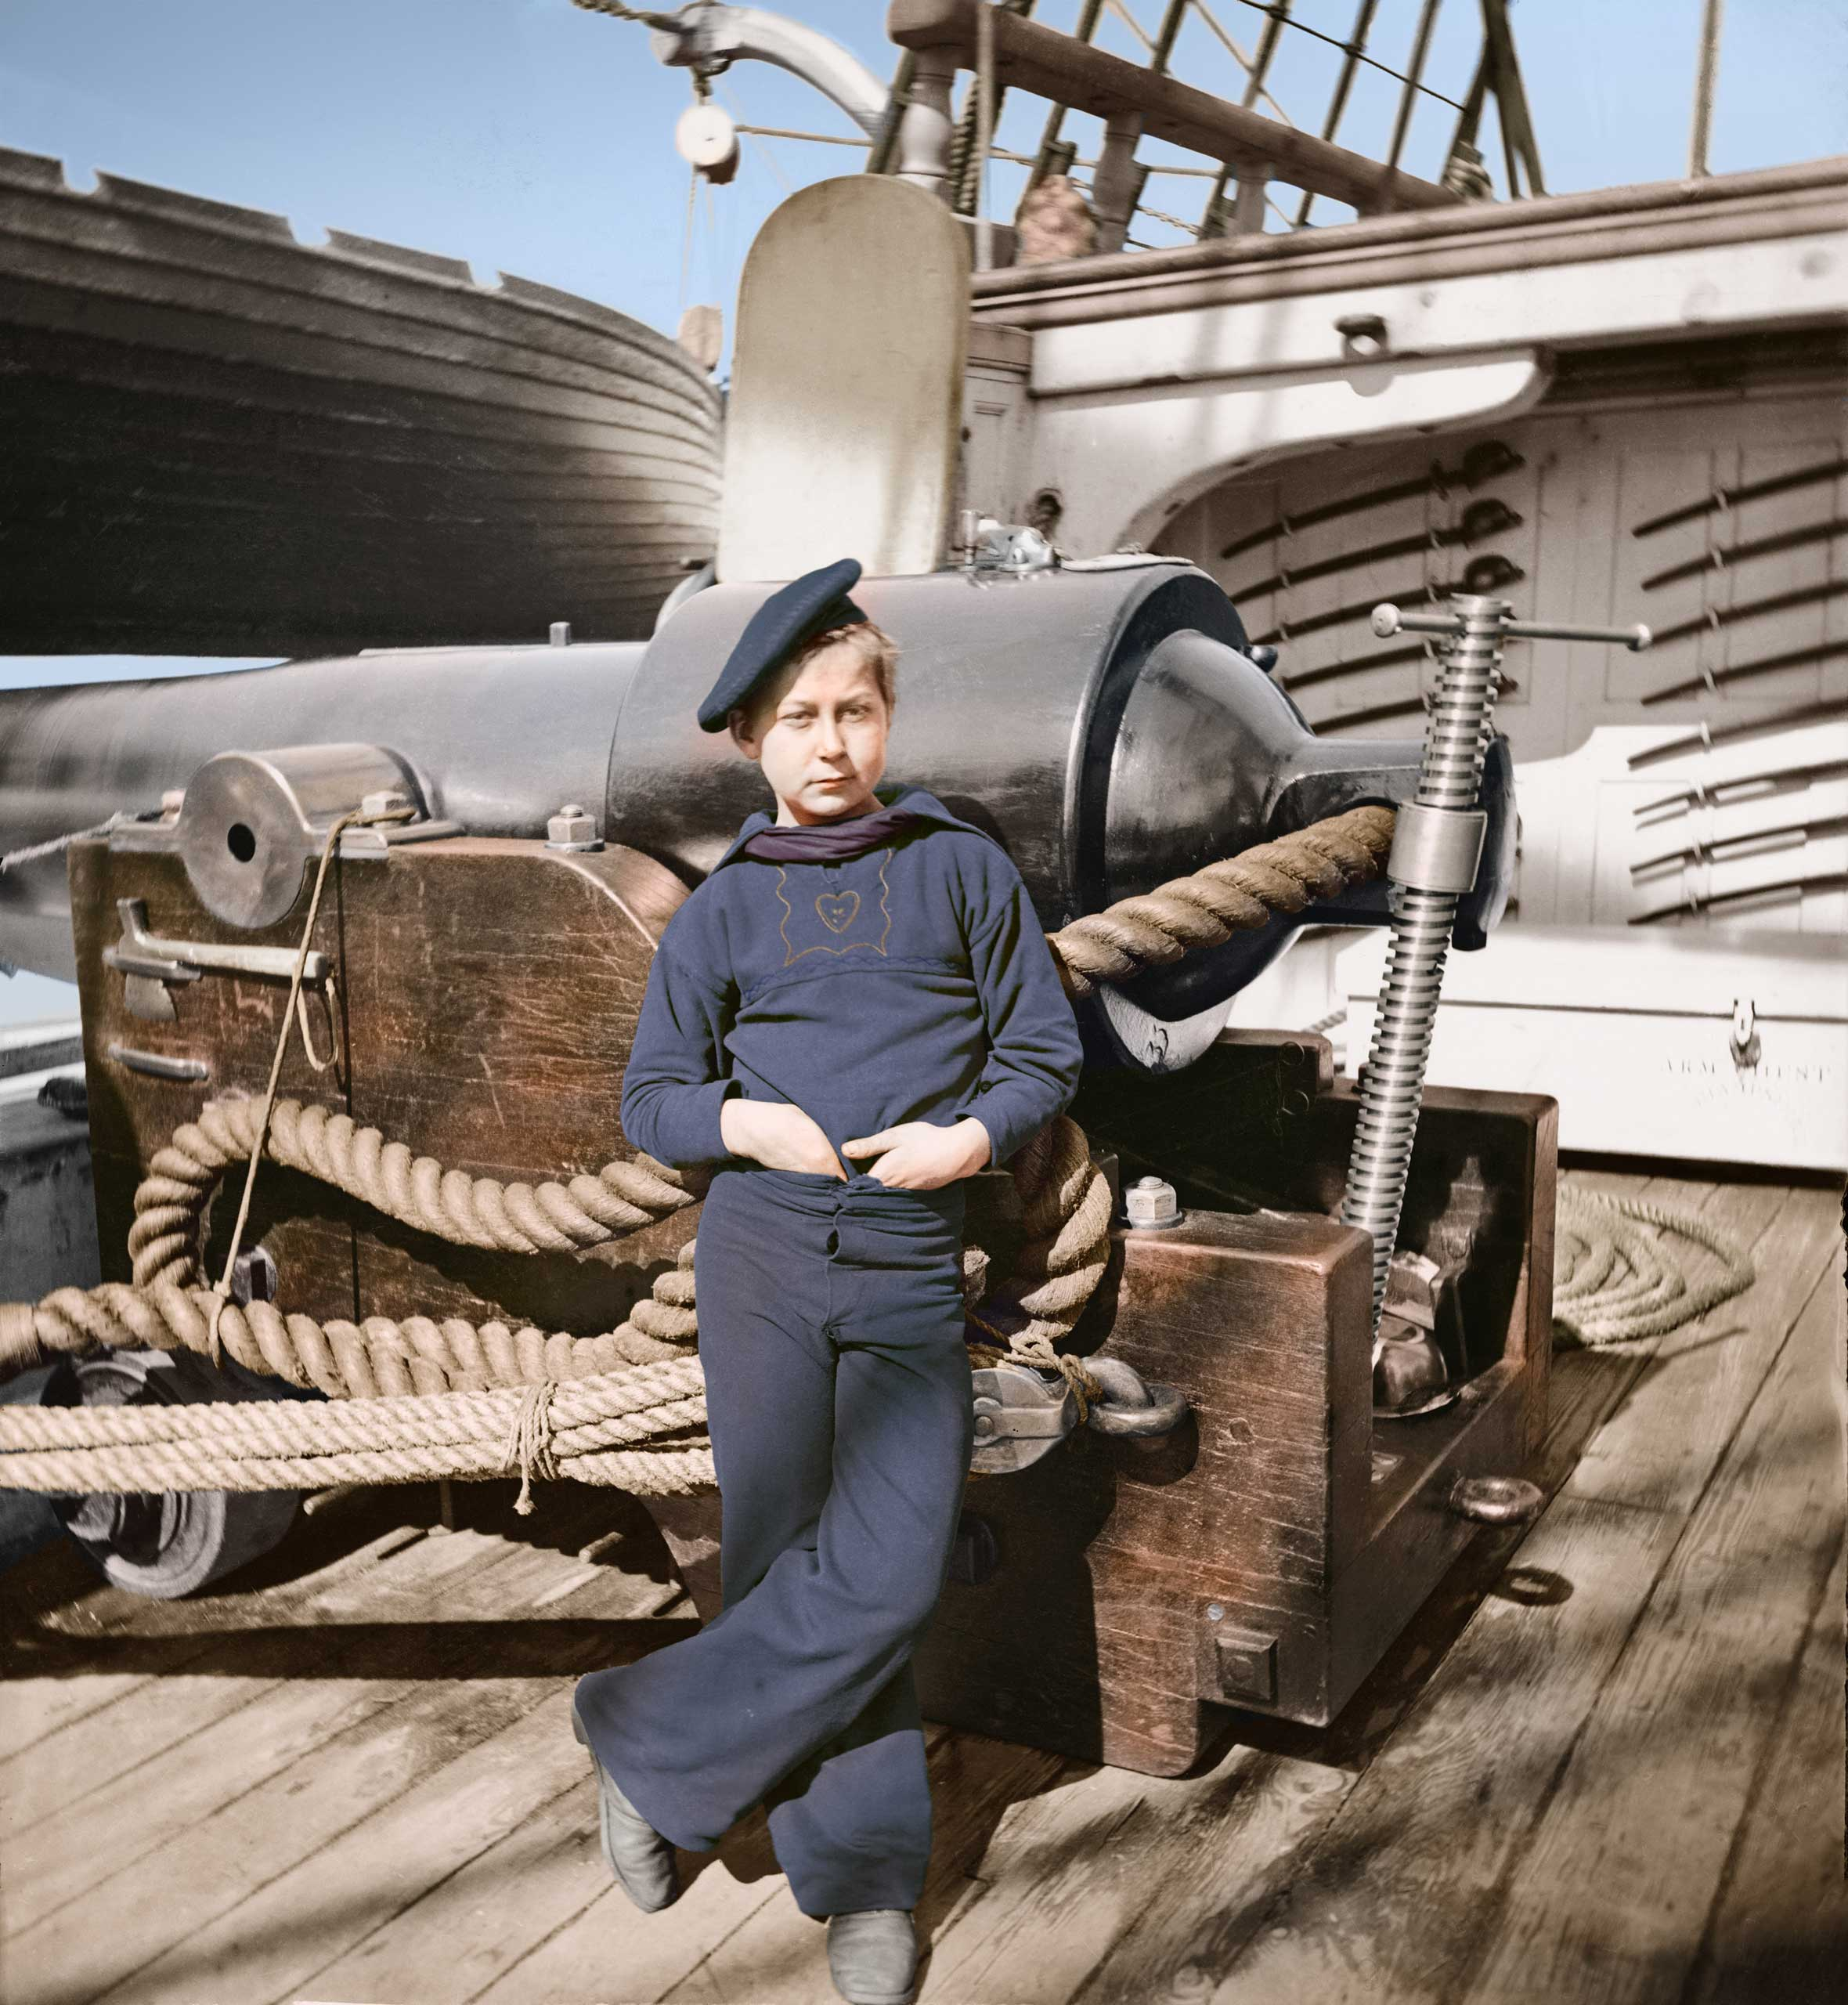 Powder boy by gun of U.S.S. New Hampshire off  the coast of Charleston, S.C., 1860.